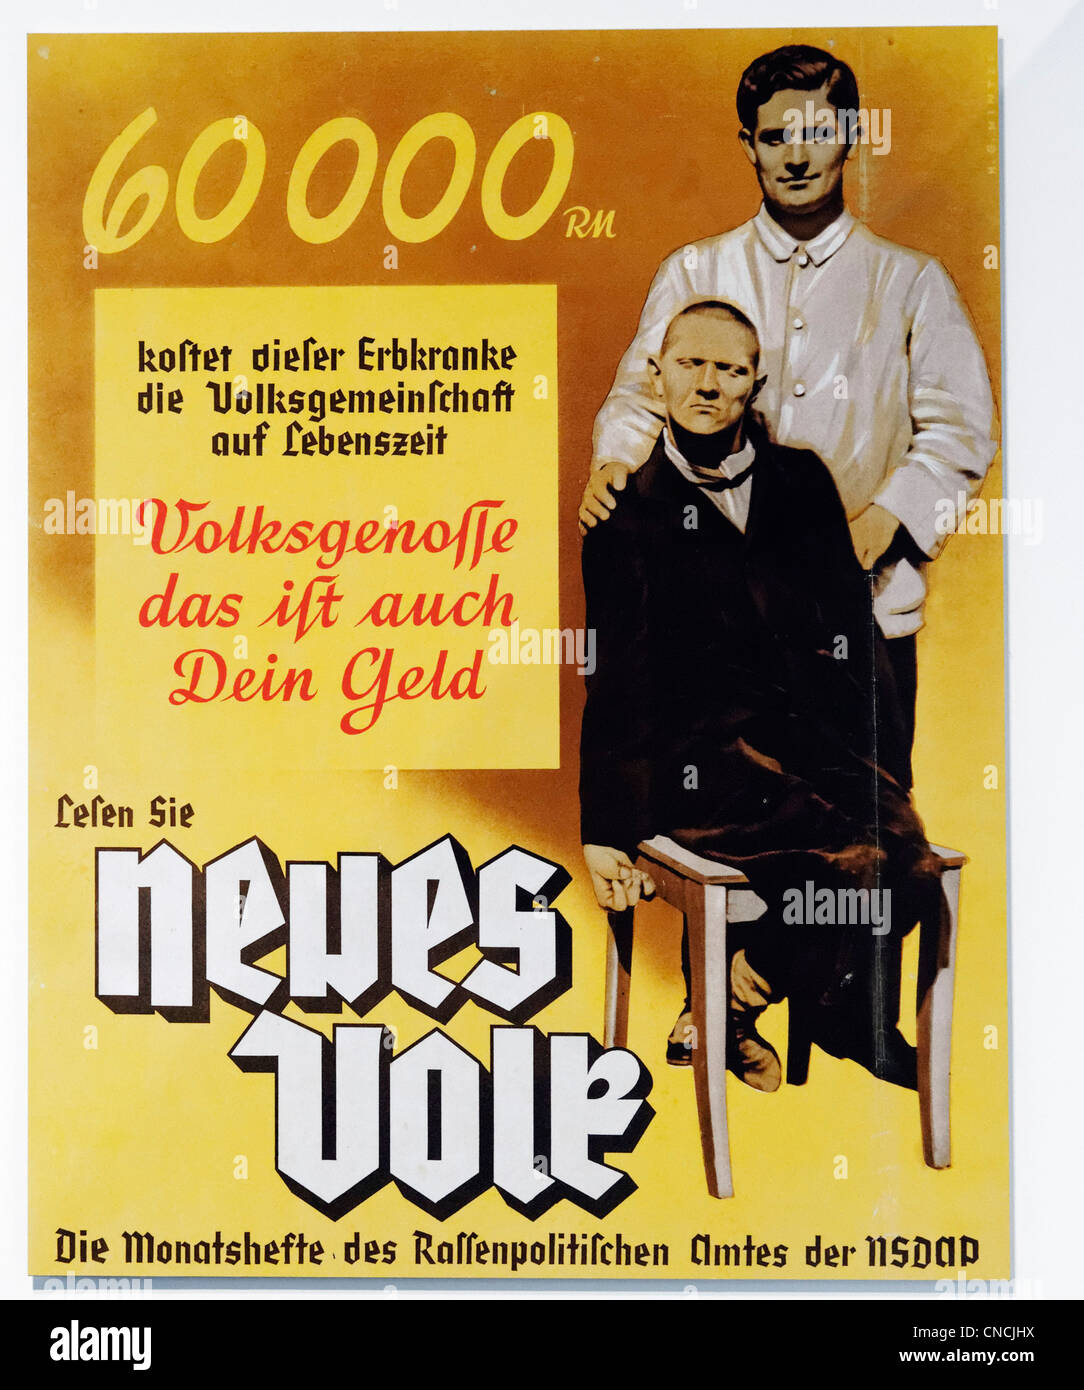 Nazi Party poster showing how disabled people cost money and promoting eugenics and euthanasia of the disabled  Stock Photo